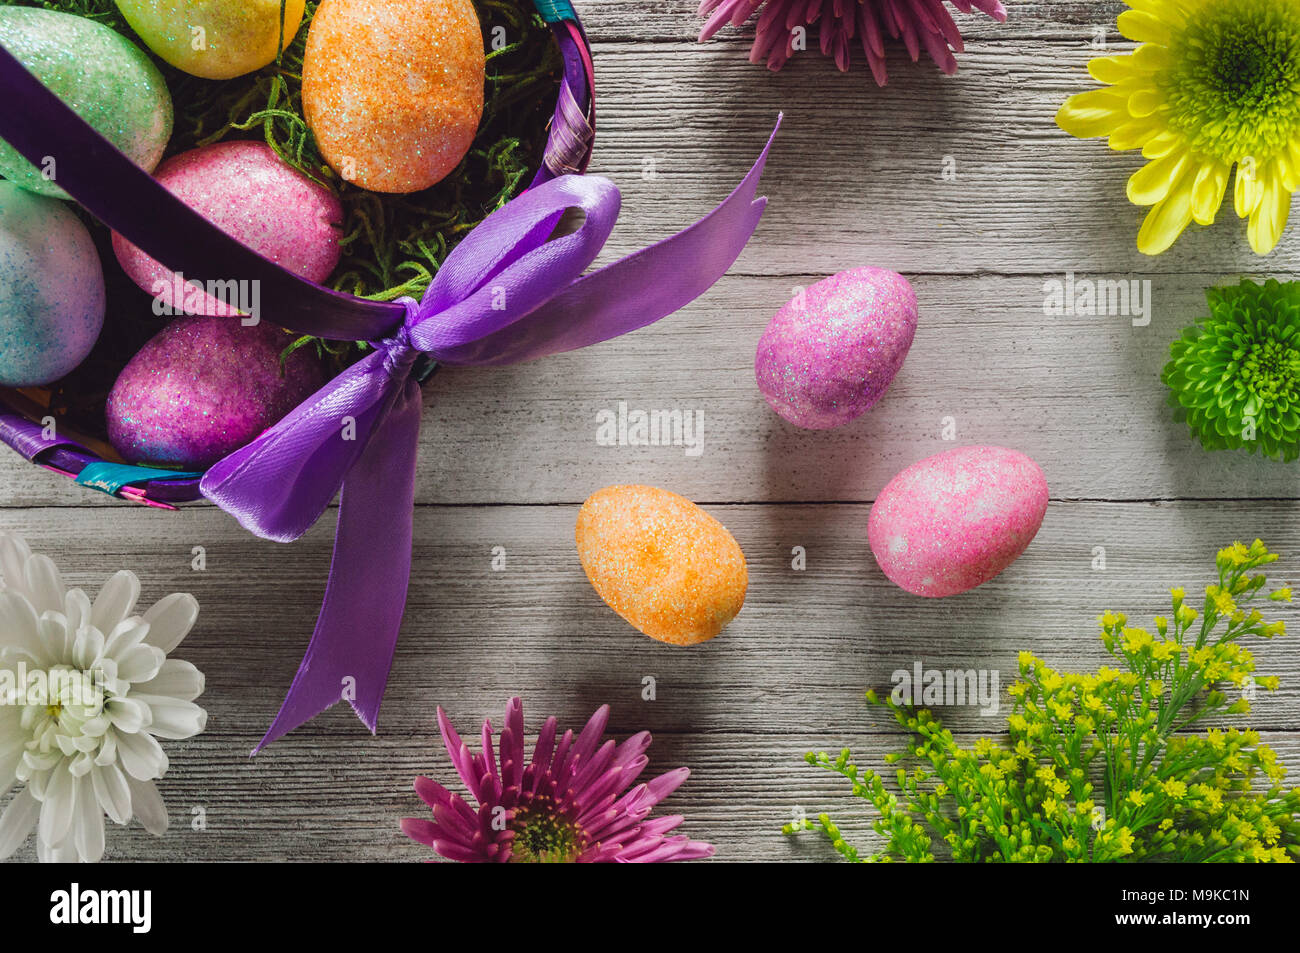 Easter Basket with Eggs and Flowers on White Rustic Table - Stock Image